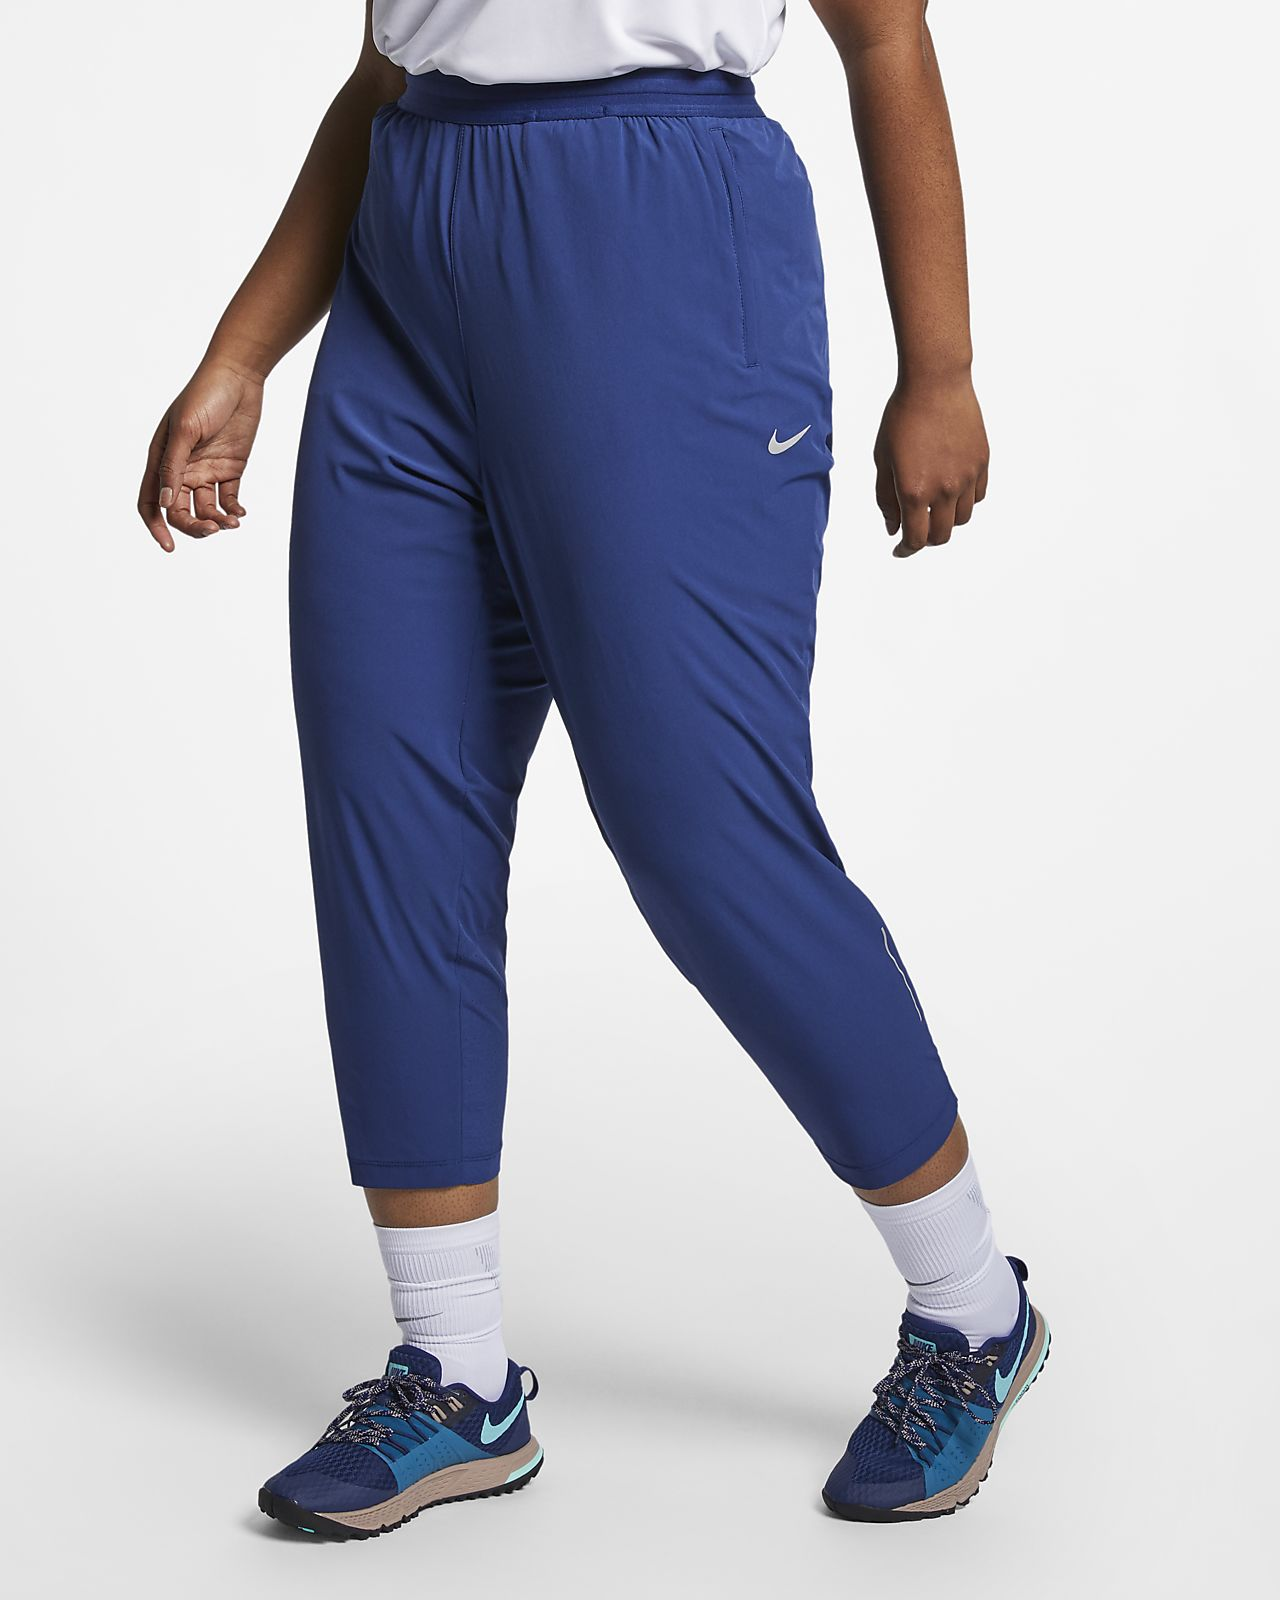 Nike Essential Women's 7/8 Running Trousers (Plus Size)